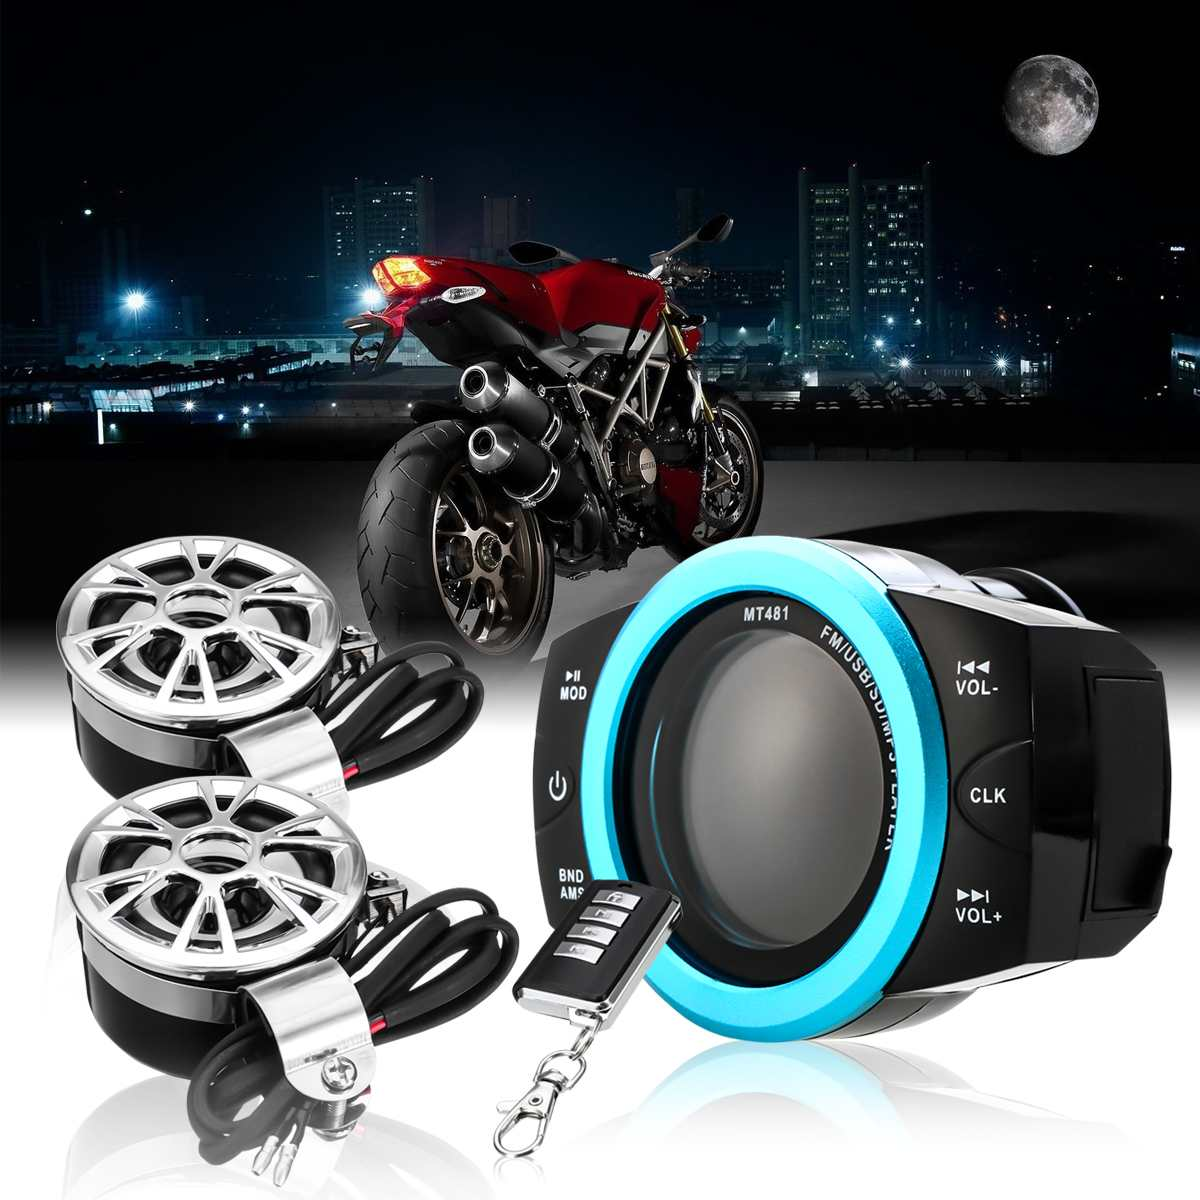 Universal Motorcycle Anti-theft Audio Radio System Stereo FM/TF/USB/SD/MP3 Waterproof